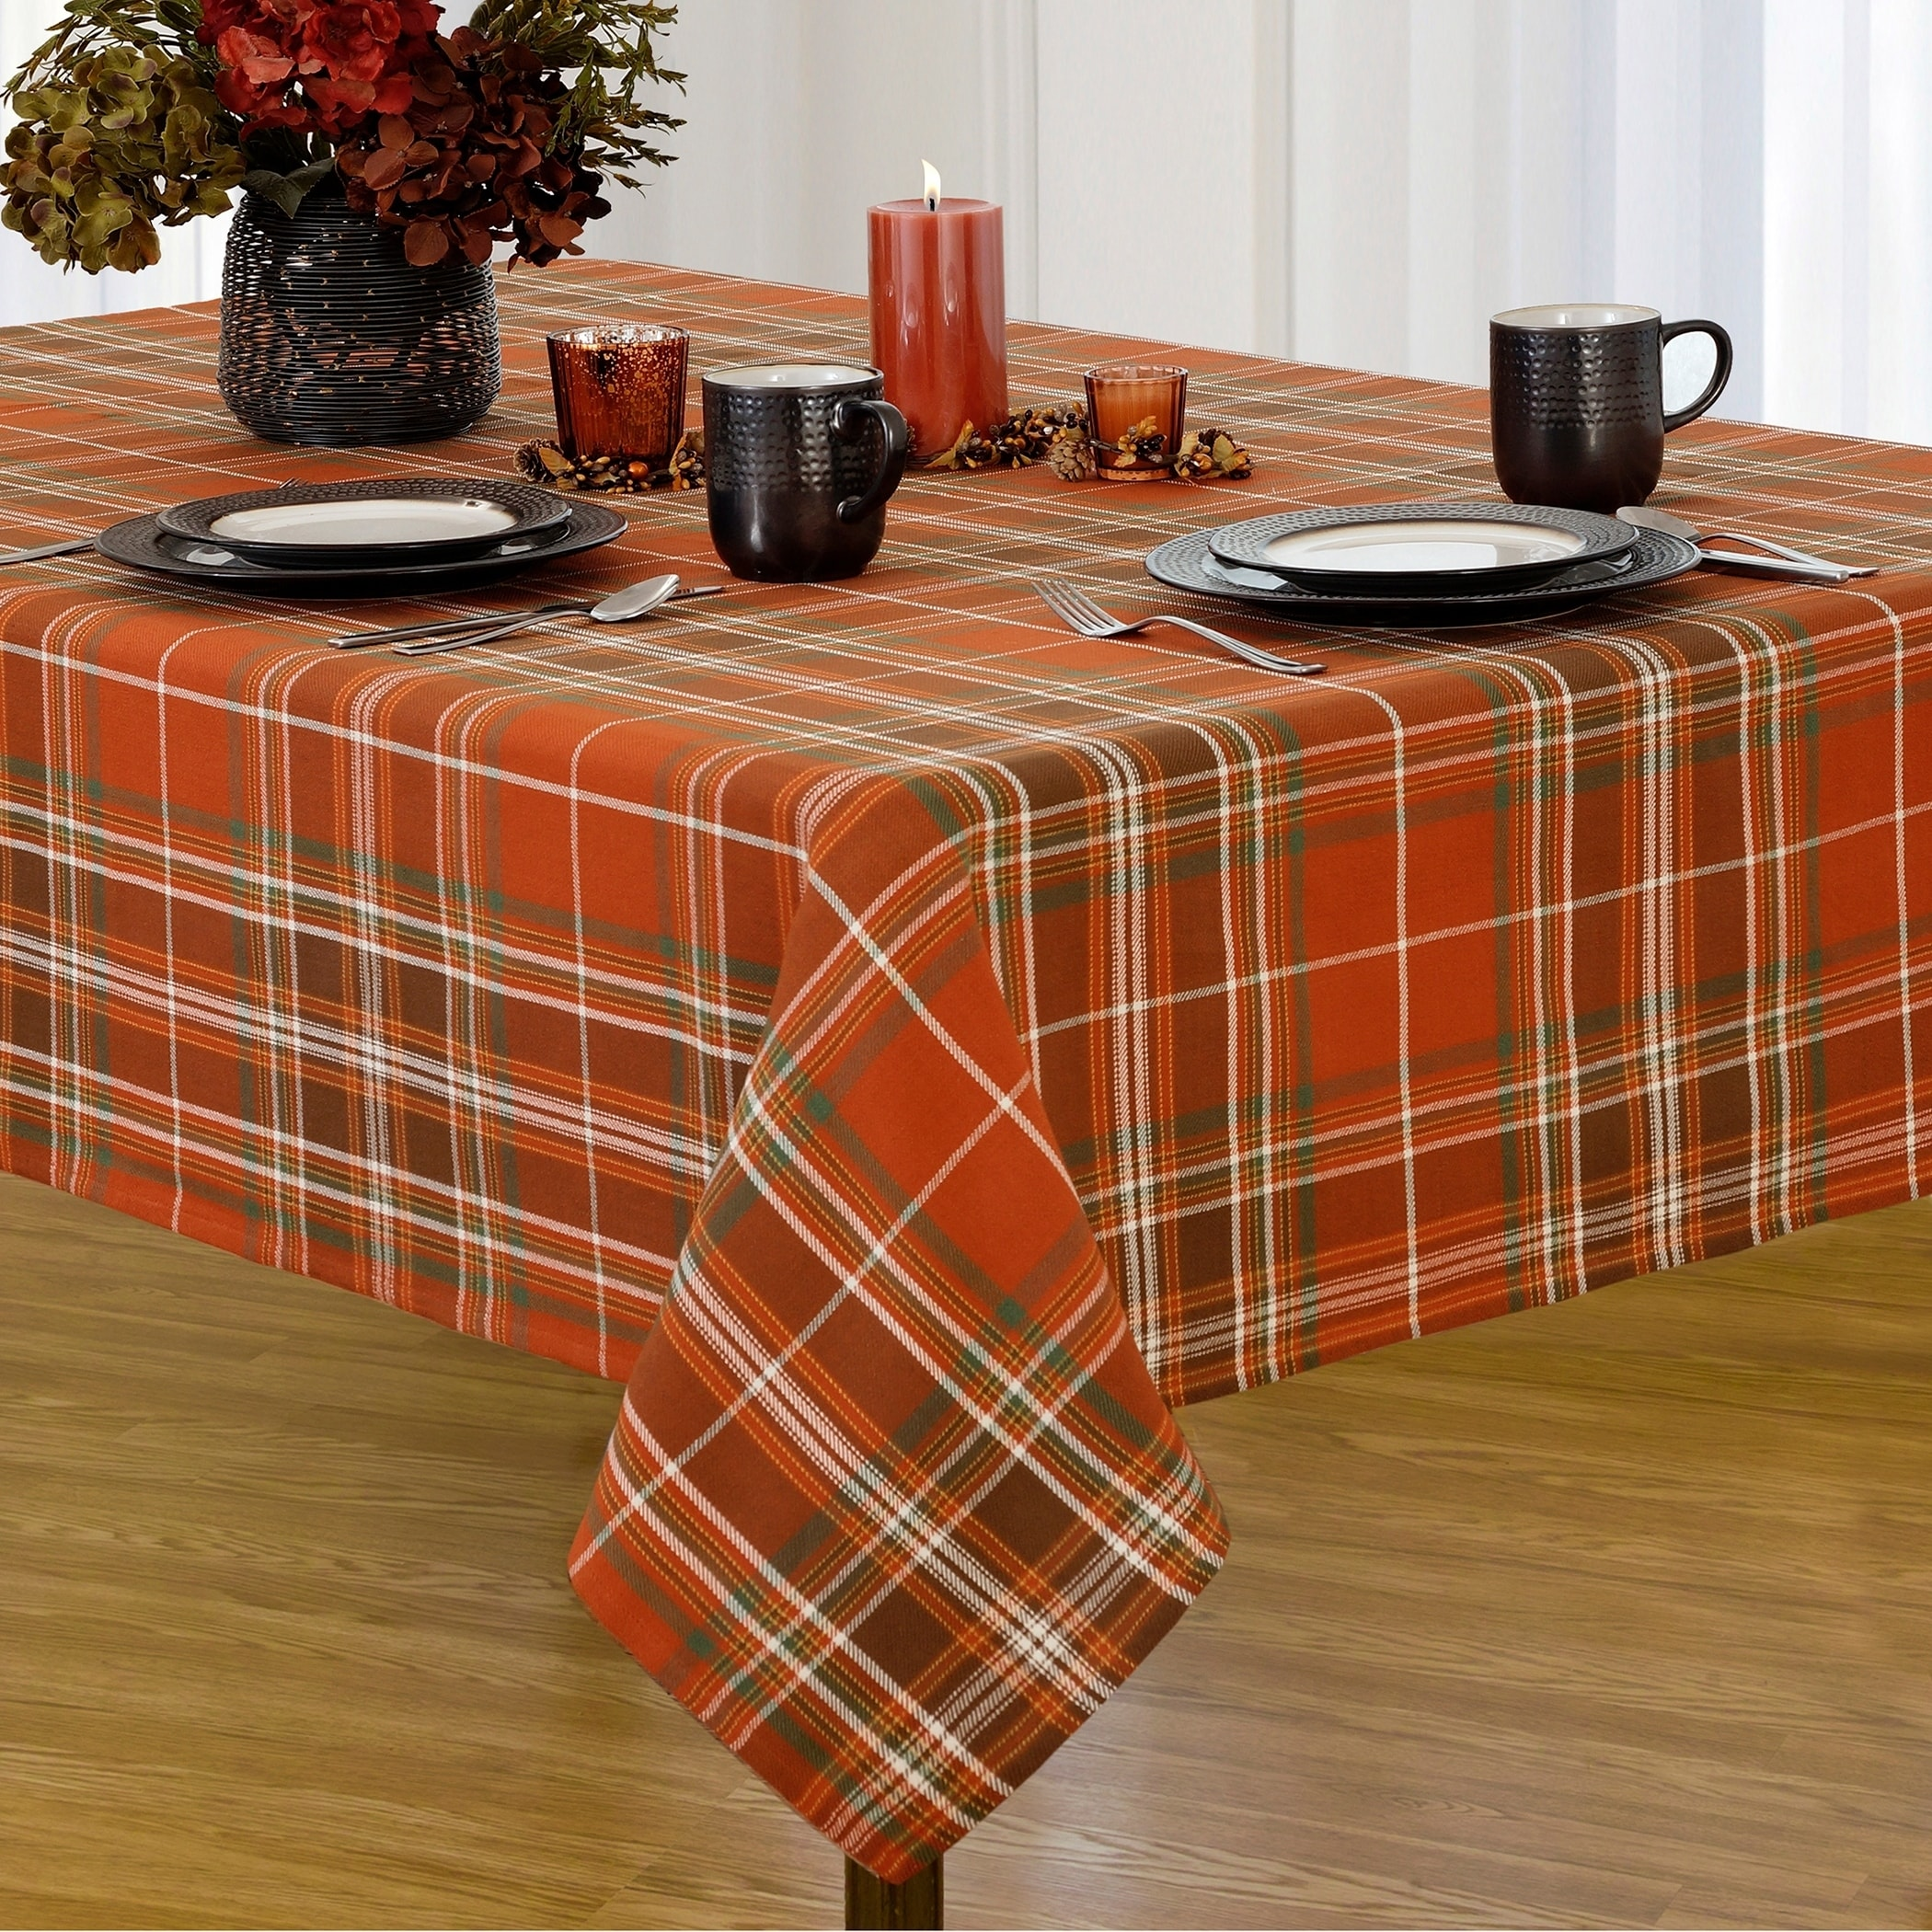 Shop Loden Plaid Fabric Harvest Cotton Woven Tablecloth   Free Shipping  Today   Overstock.com   18008744